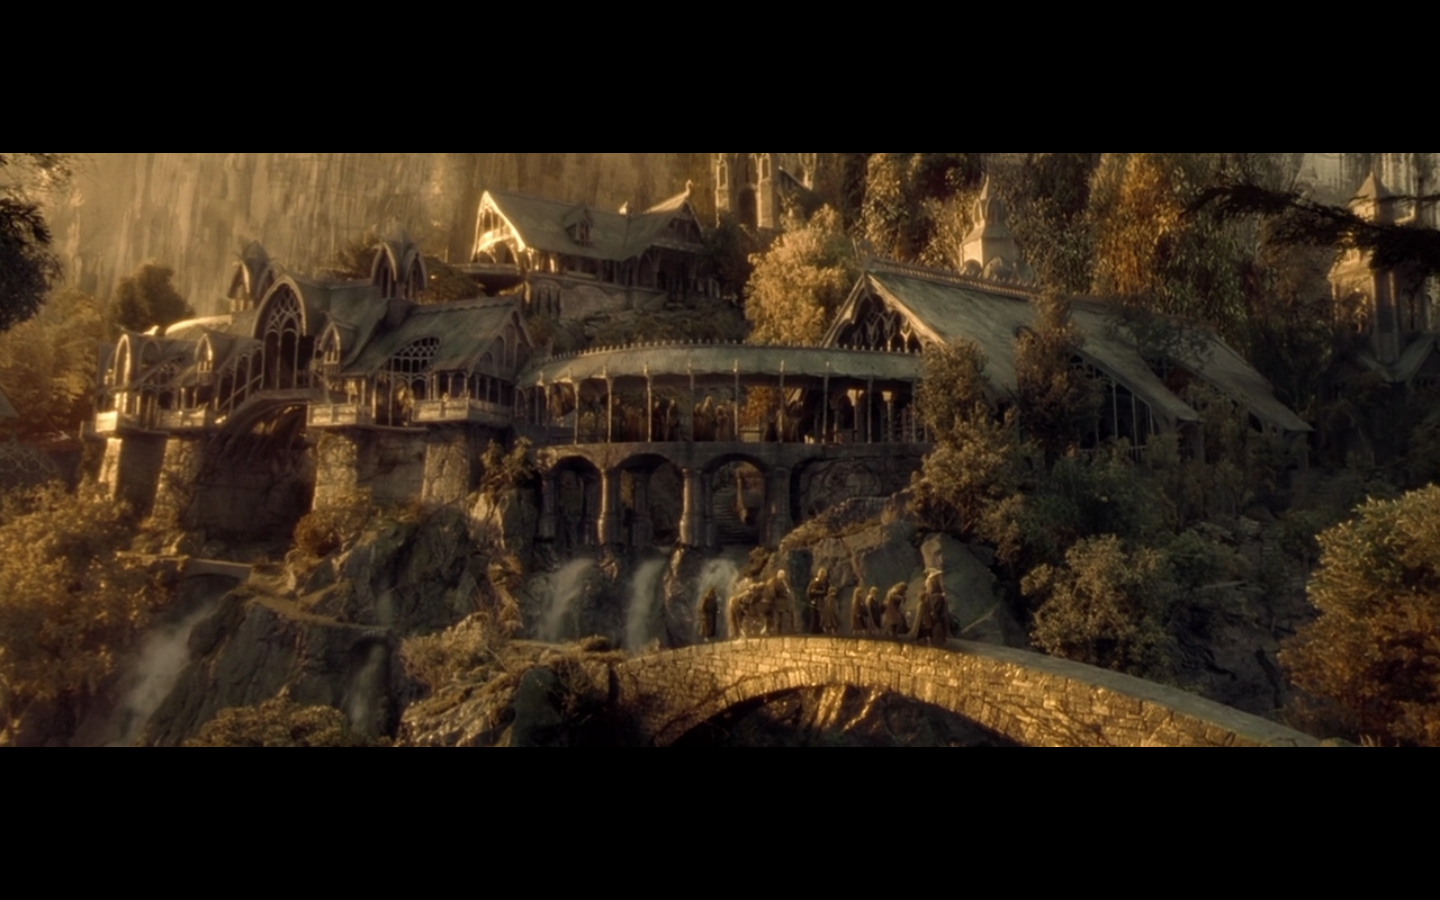 Free Download The Lord Of The Rings The Fellowship Of The Ring